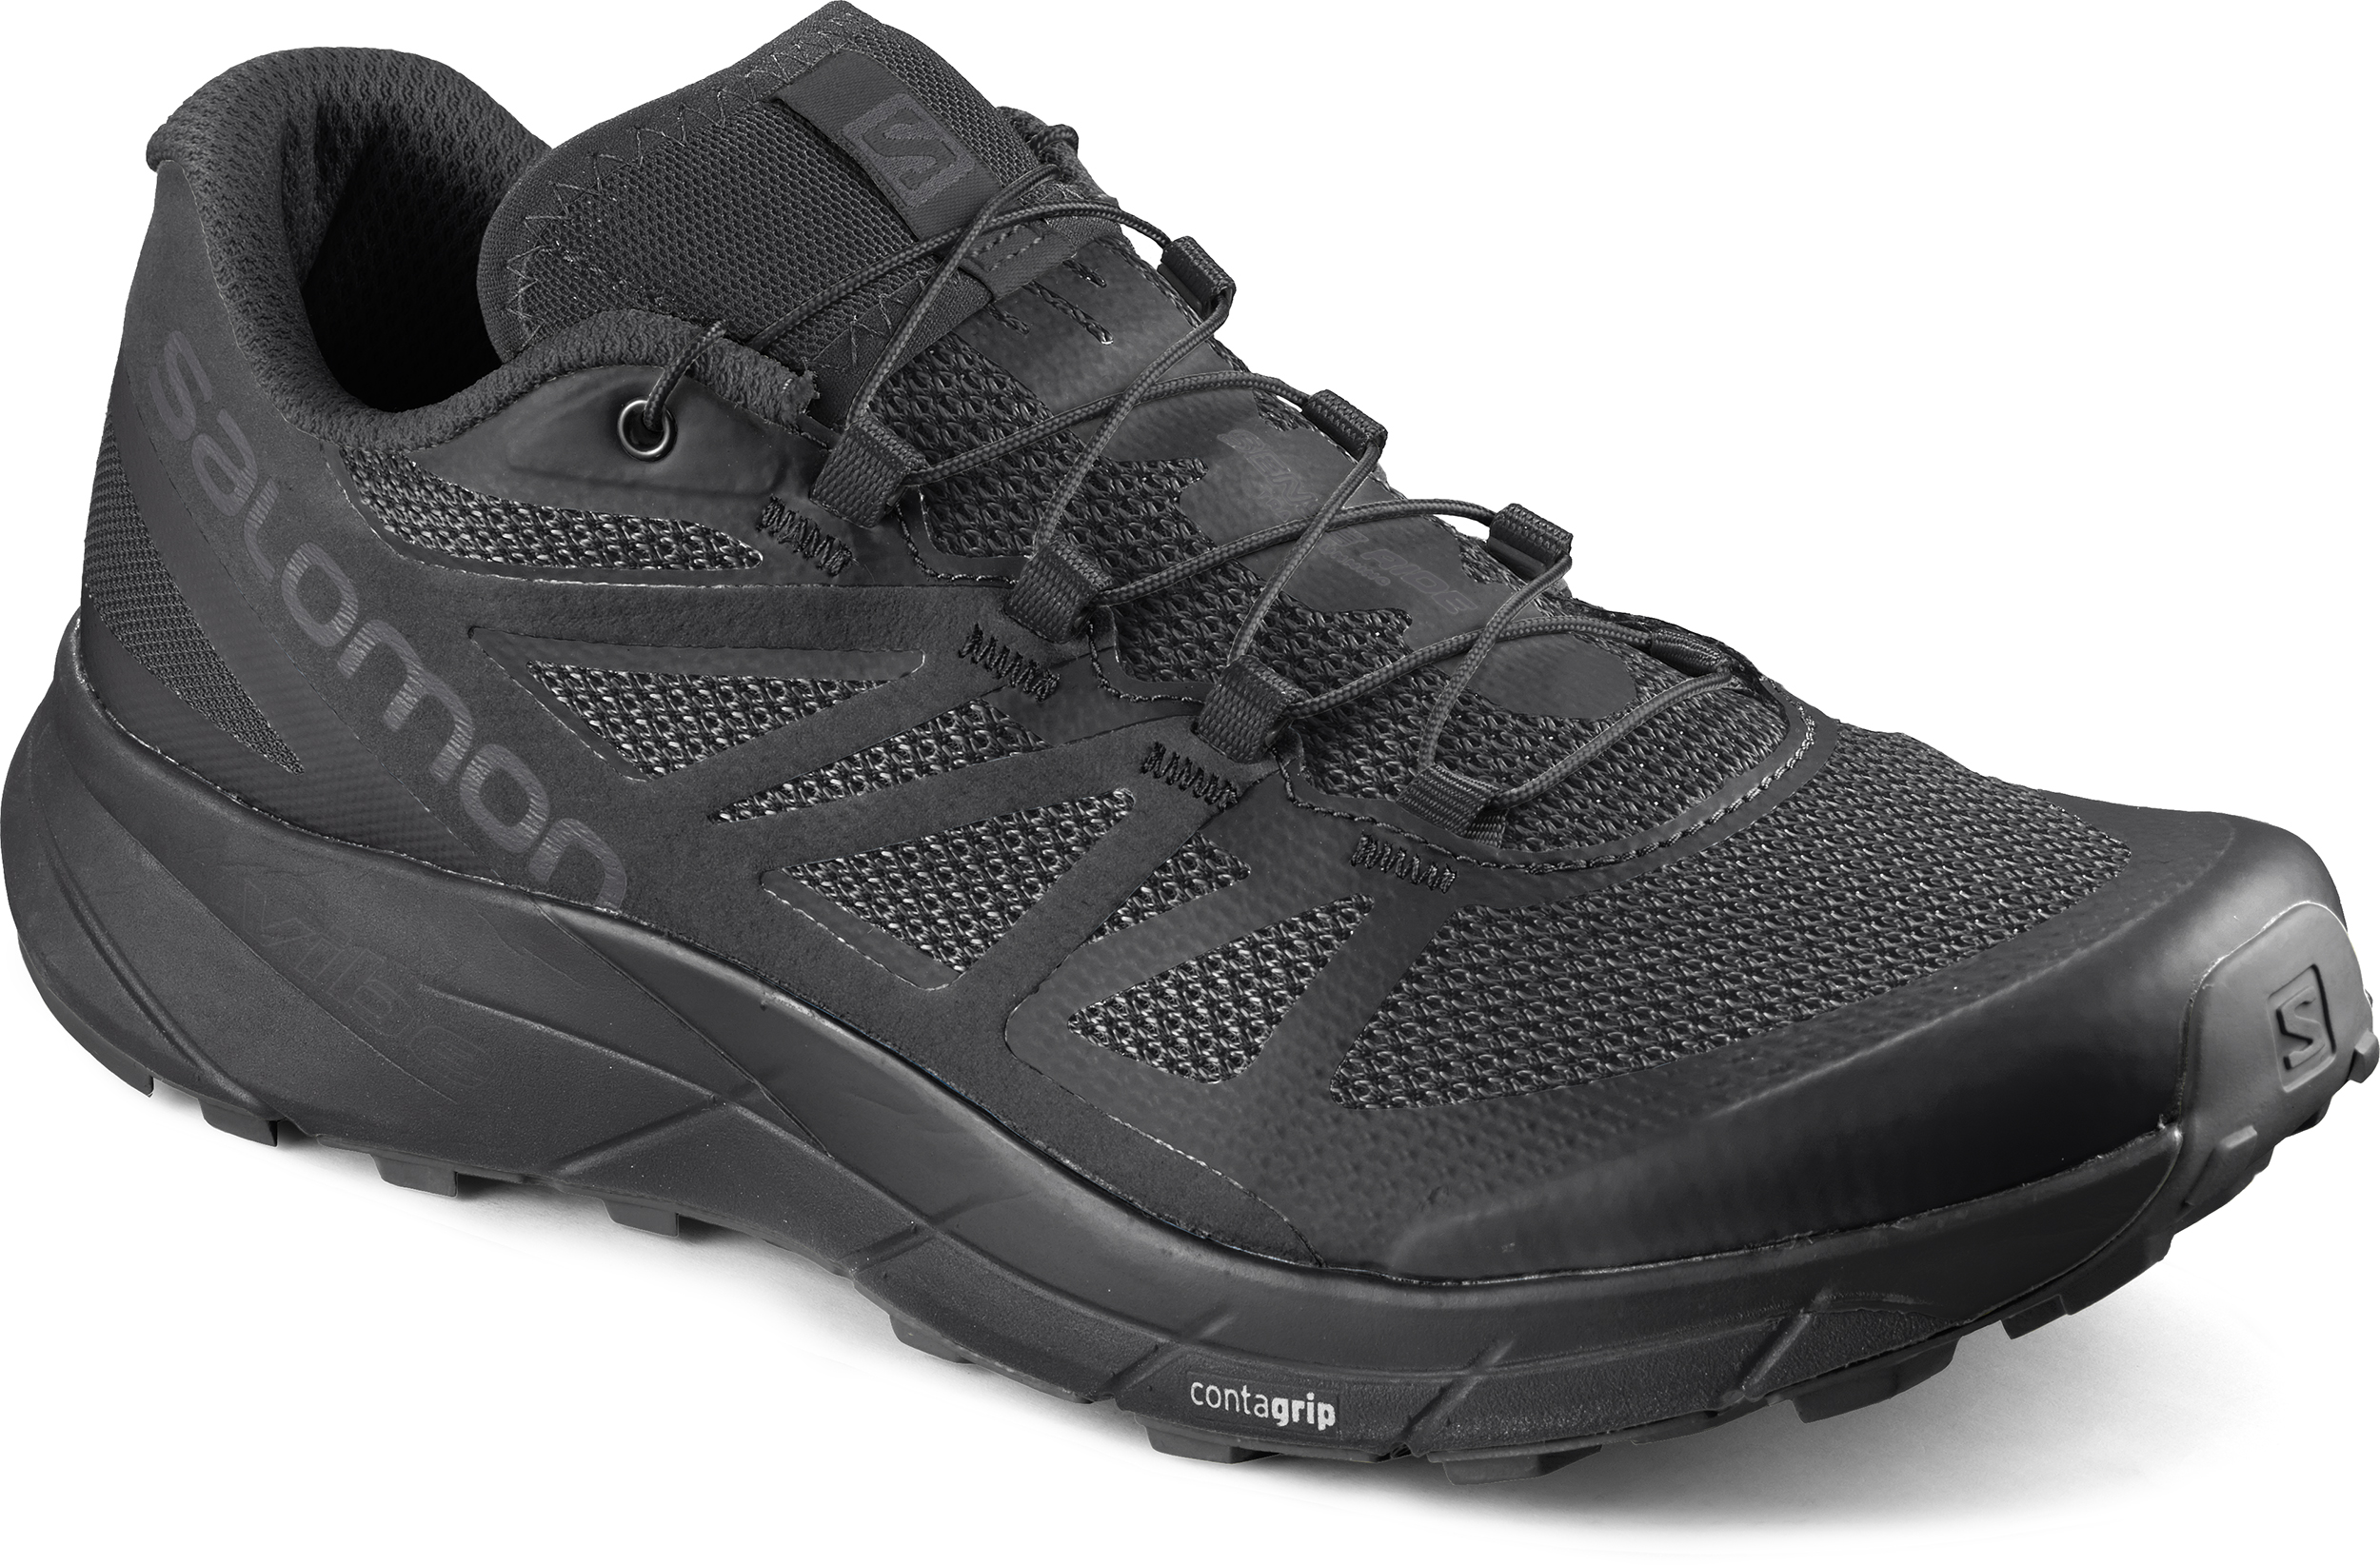 Fit Course Chaussures De Sense Invisible Gtx Ride Salomon yN0vOPm8wn